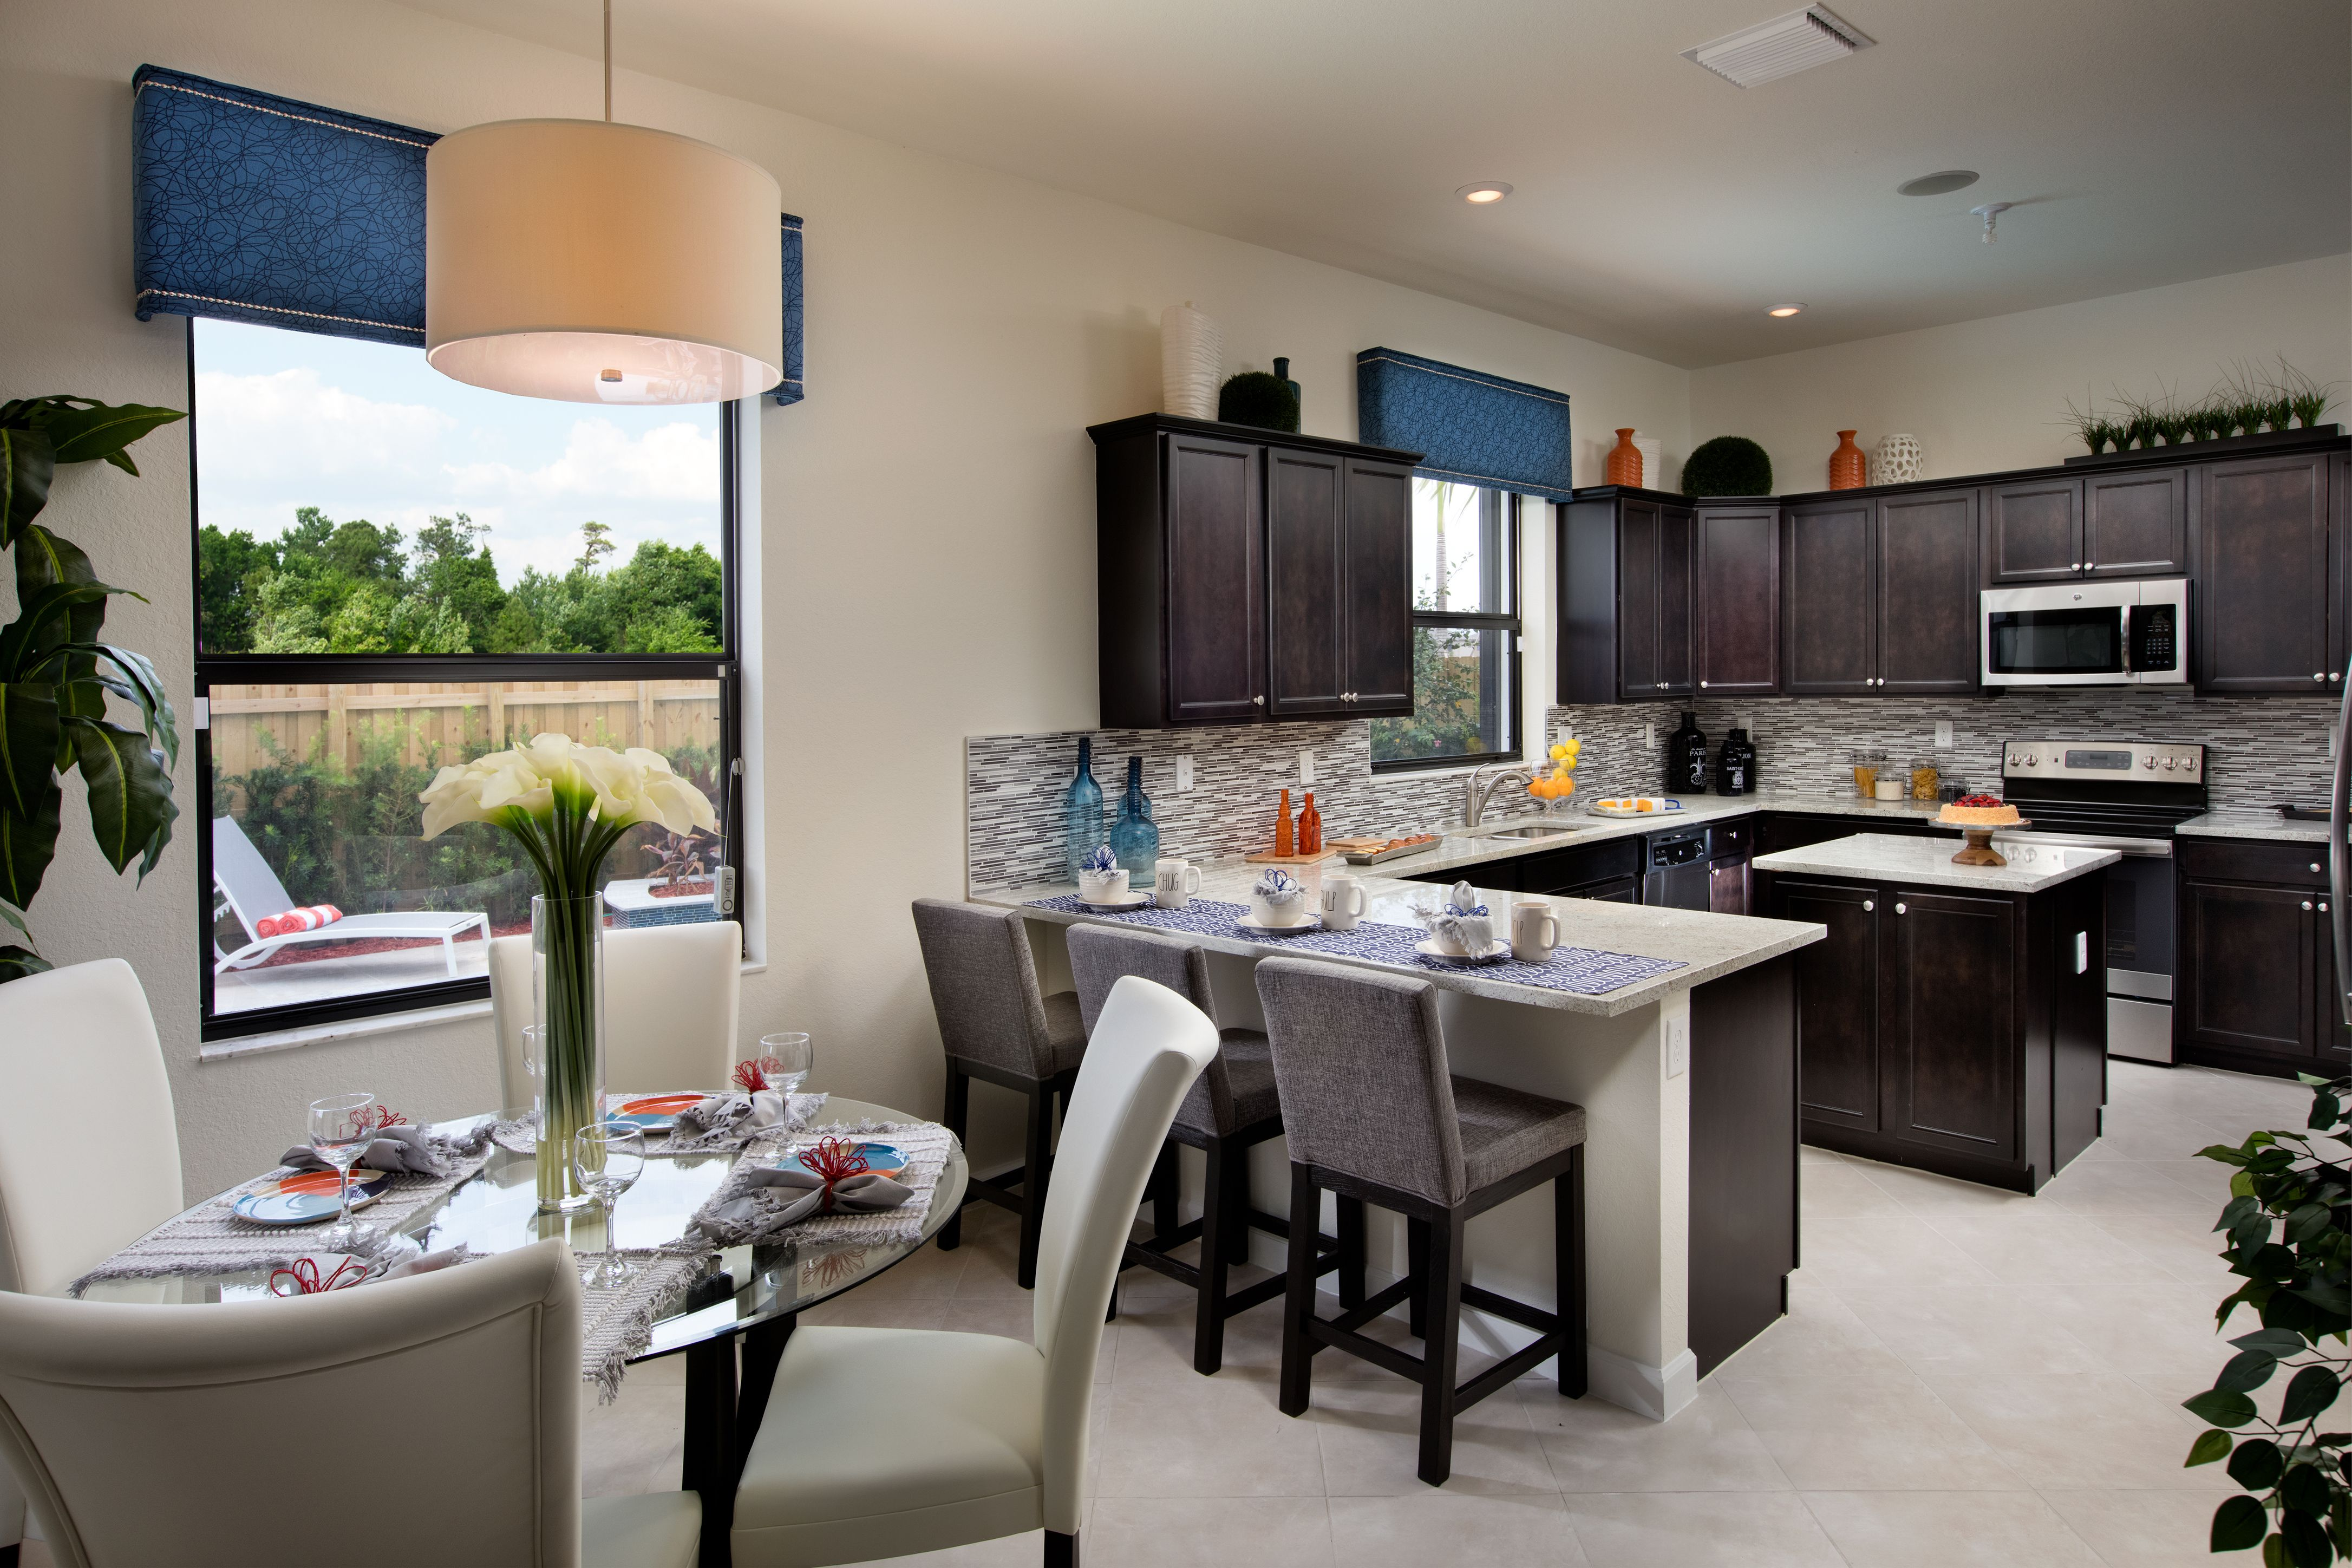 Would You Like To Get Your Day Started In This Kitchen Breakfast Area At Artesa Lennar Miami Artesa Ki Kitchen Cabinet Design New Homes Kitchen Design